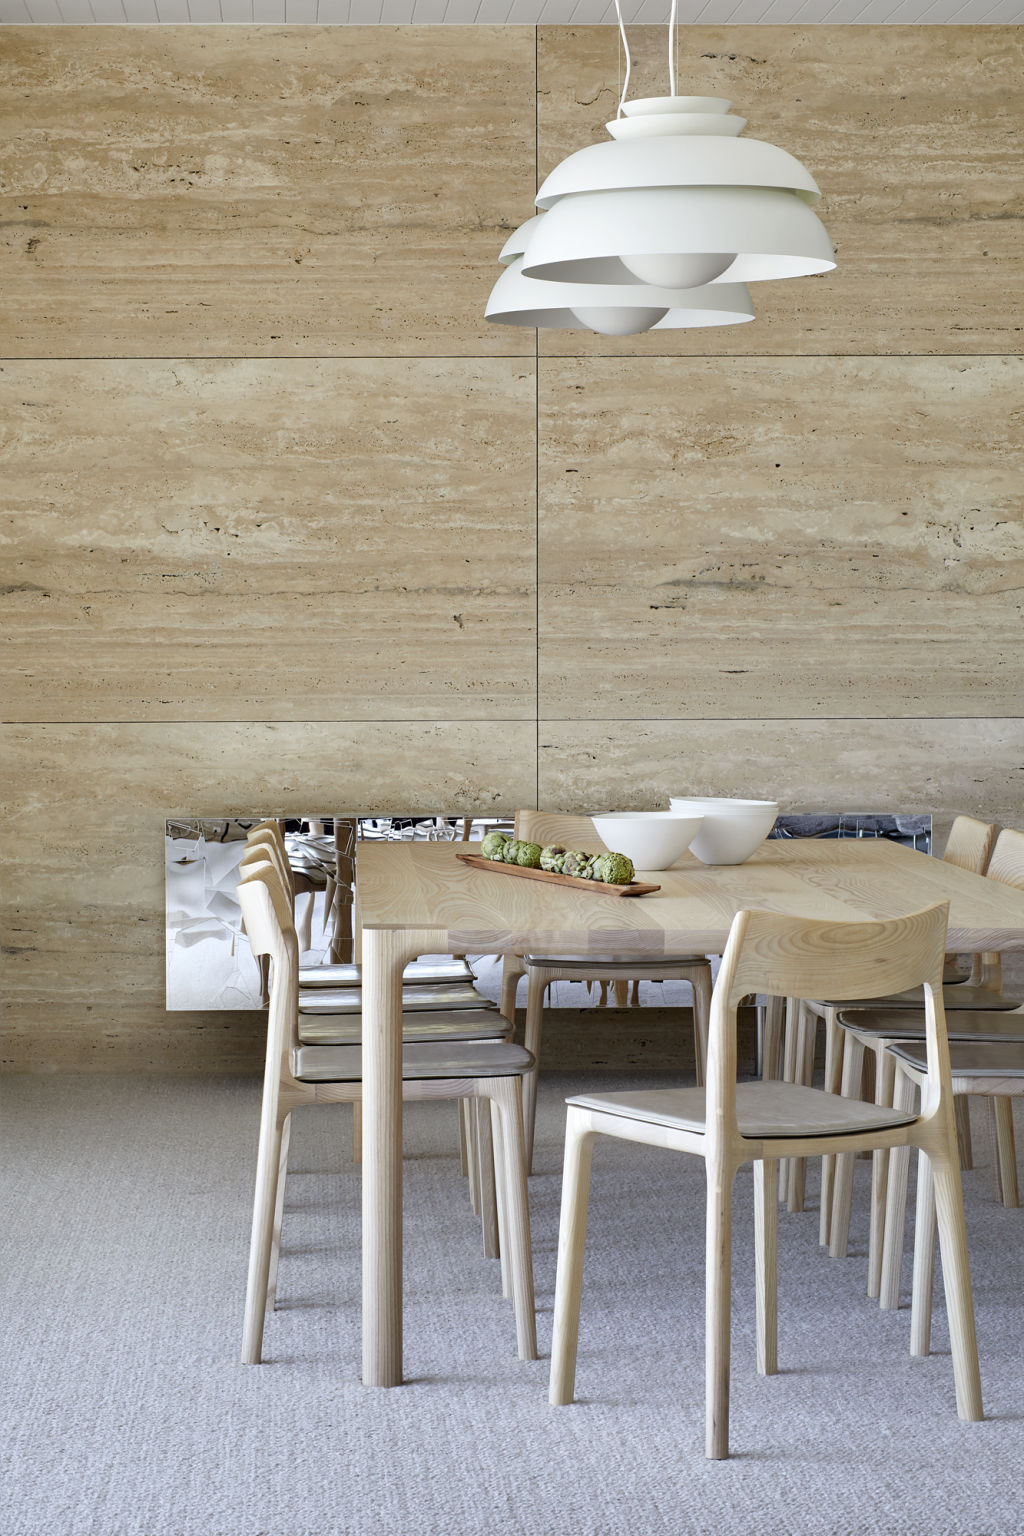 IN_the_Sorrento_dune_house_travertine_is_the_substance_of_the_walls_and_most_of_the_floors._Pix_TatjanaPlitt_0418_vxebvk